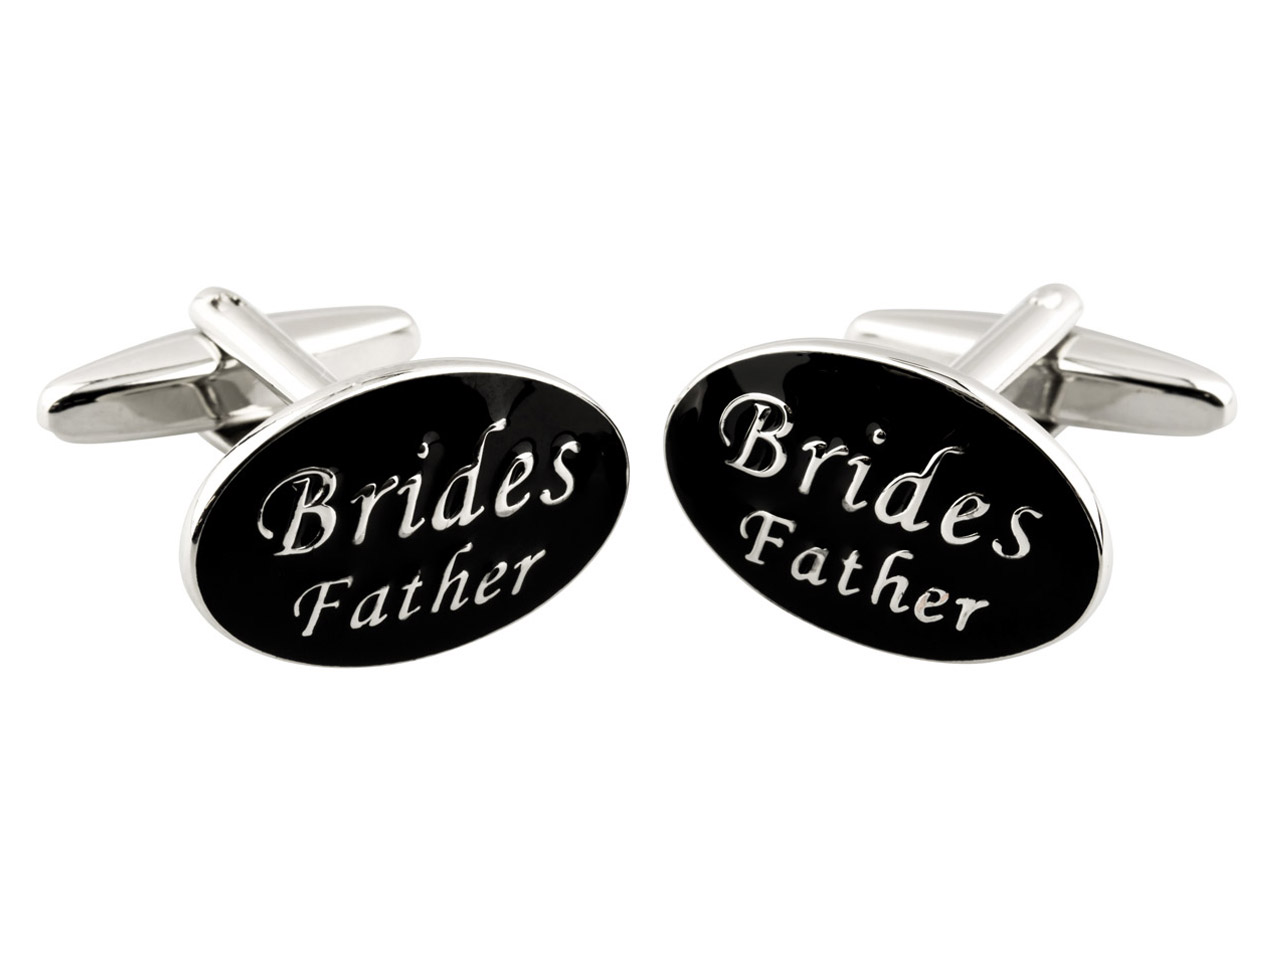 Oval Brides Father Wedding         Cuff Link Black Enamel,            Rhodium Plated Brass